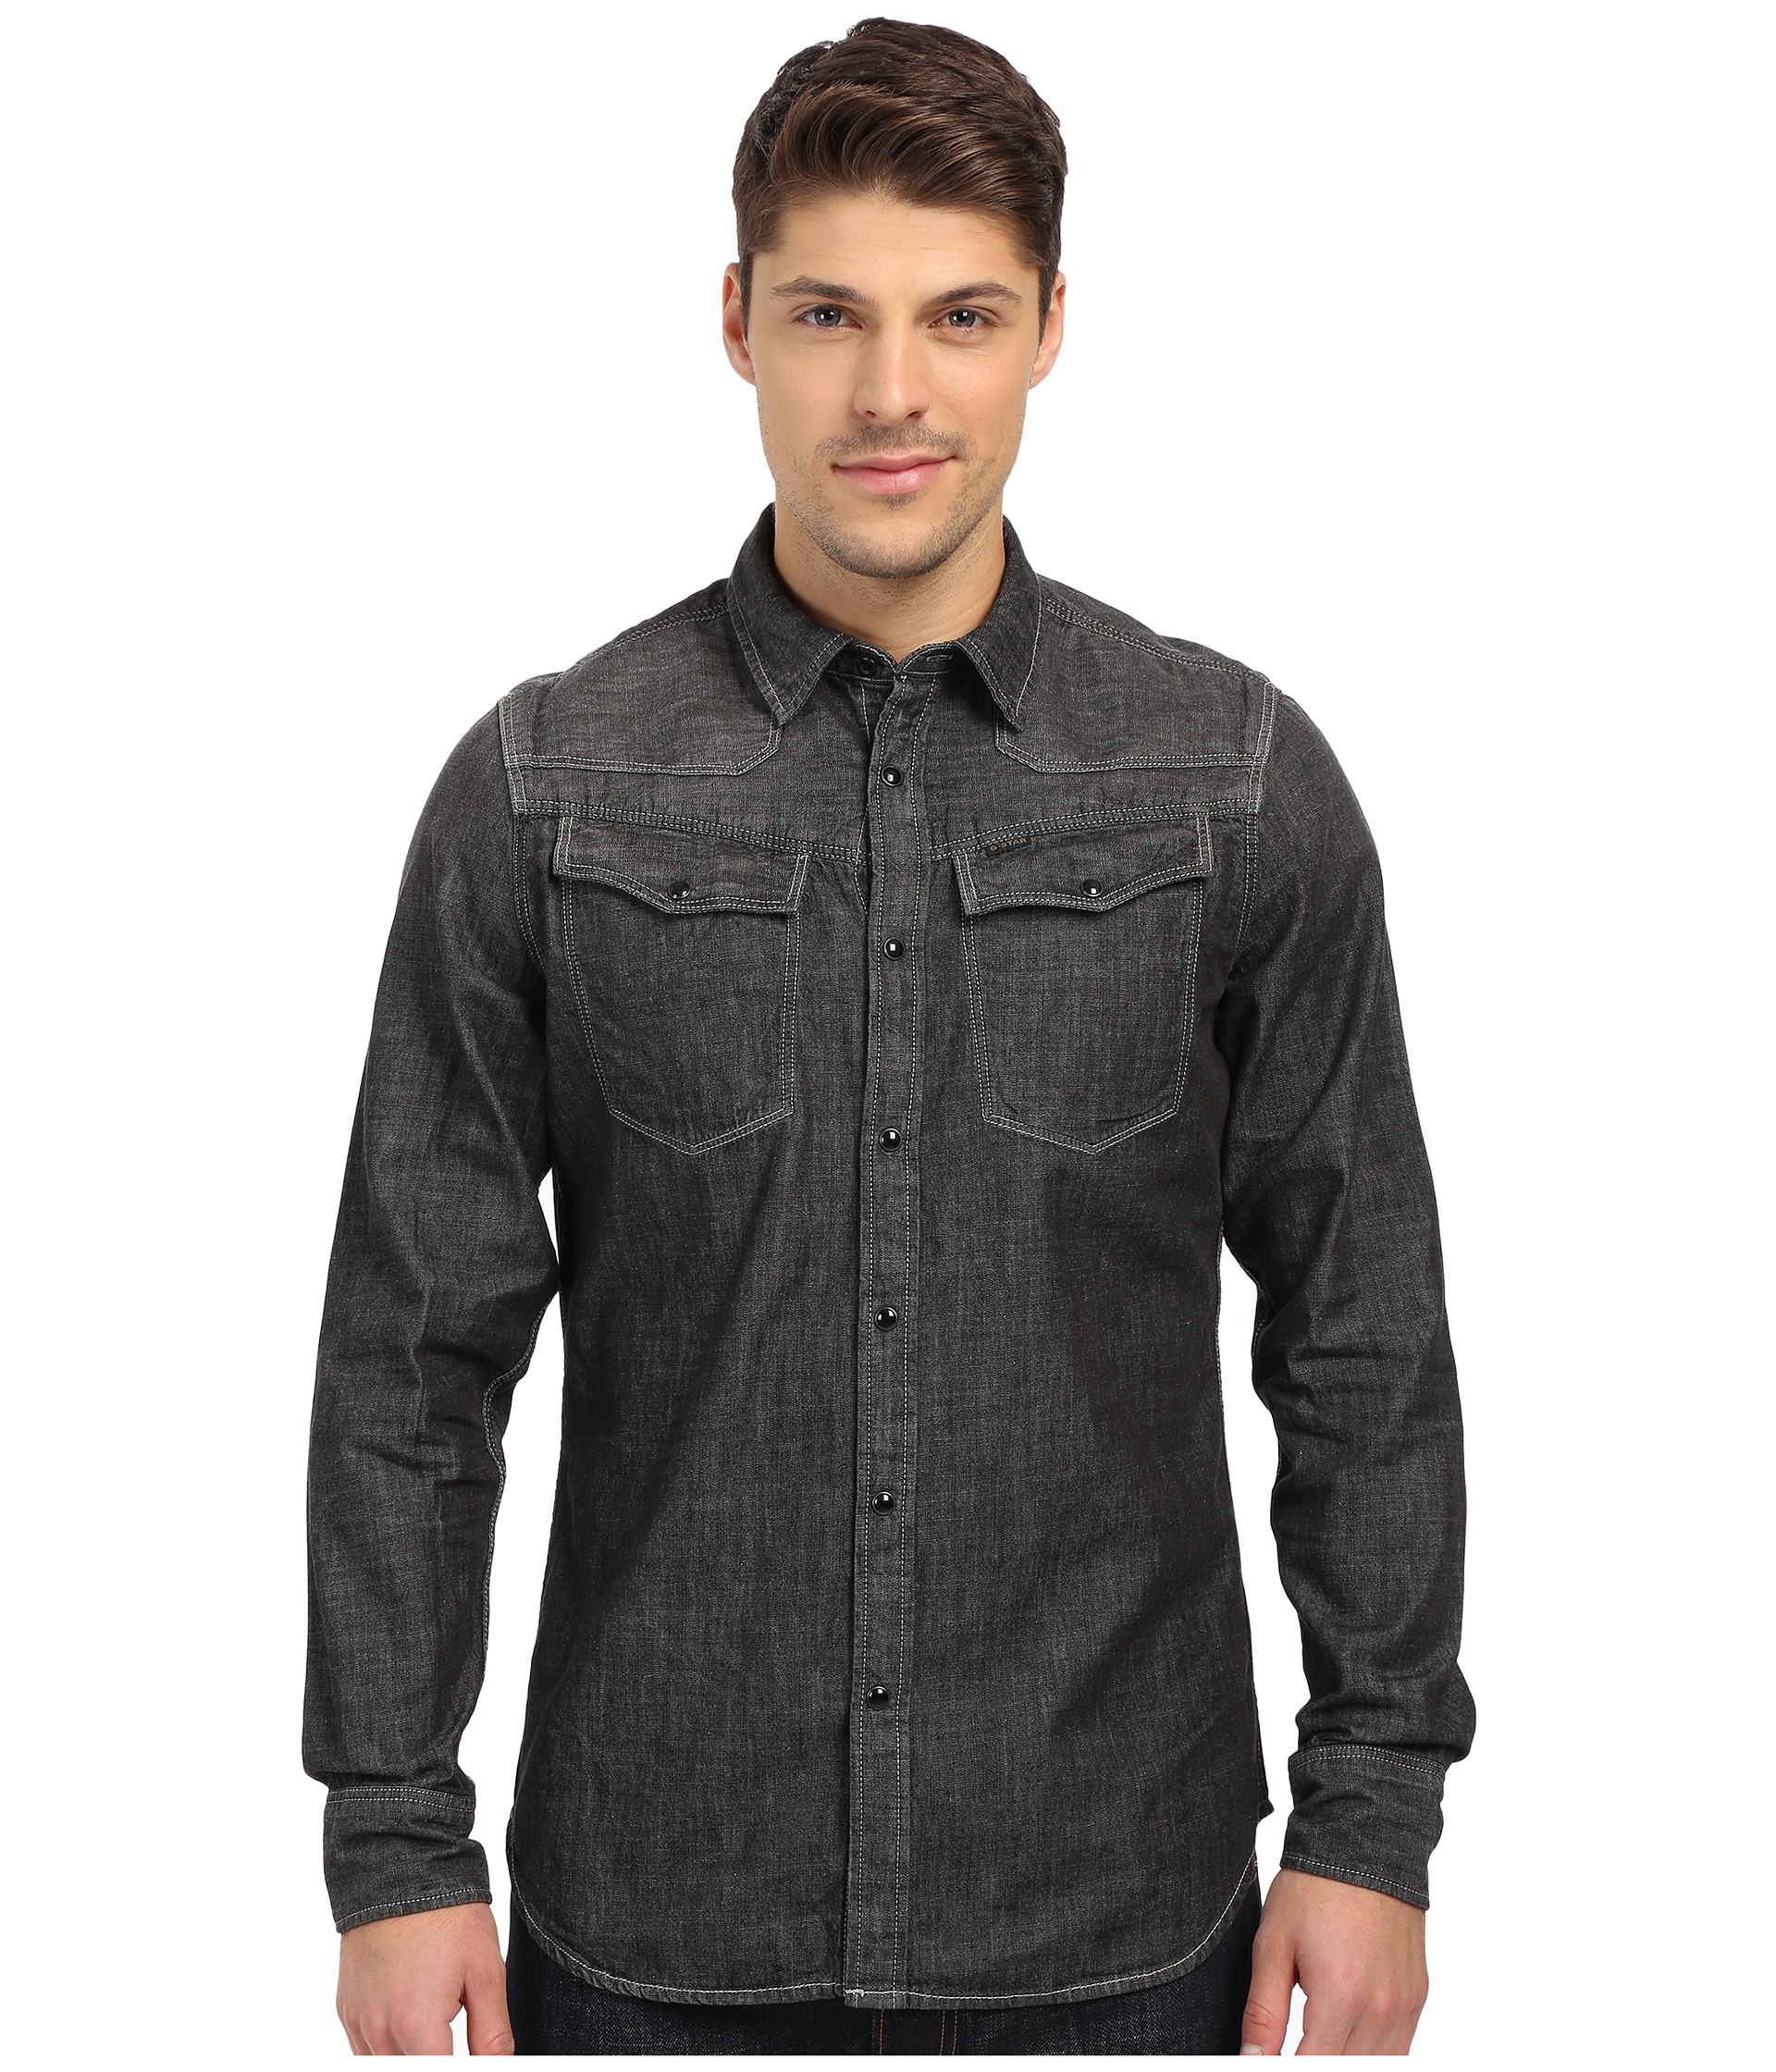 g star raw 3301 shirt in black for men lyst. Black Bedroom Furniture Sets. Home Design Ideas